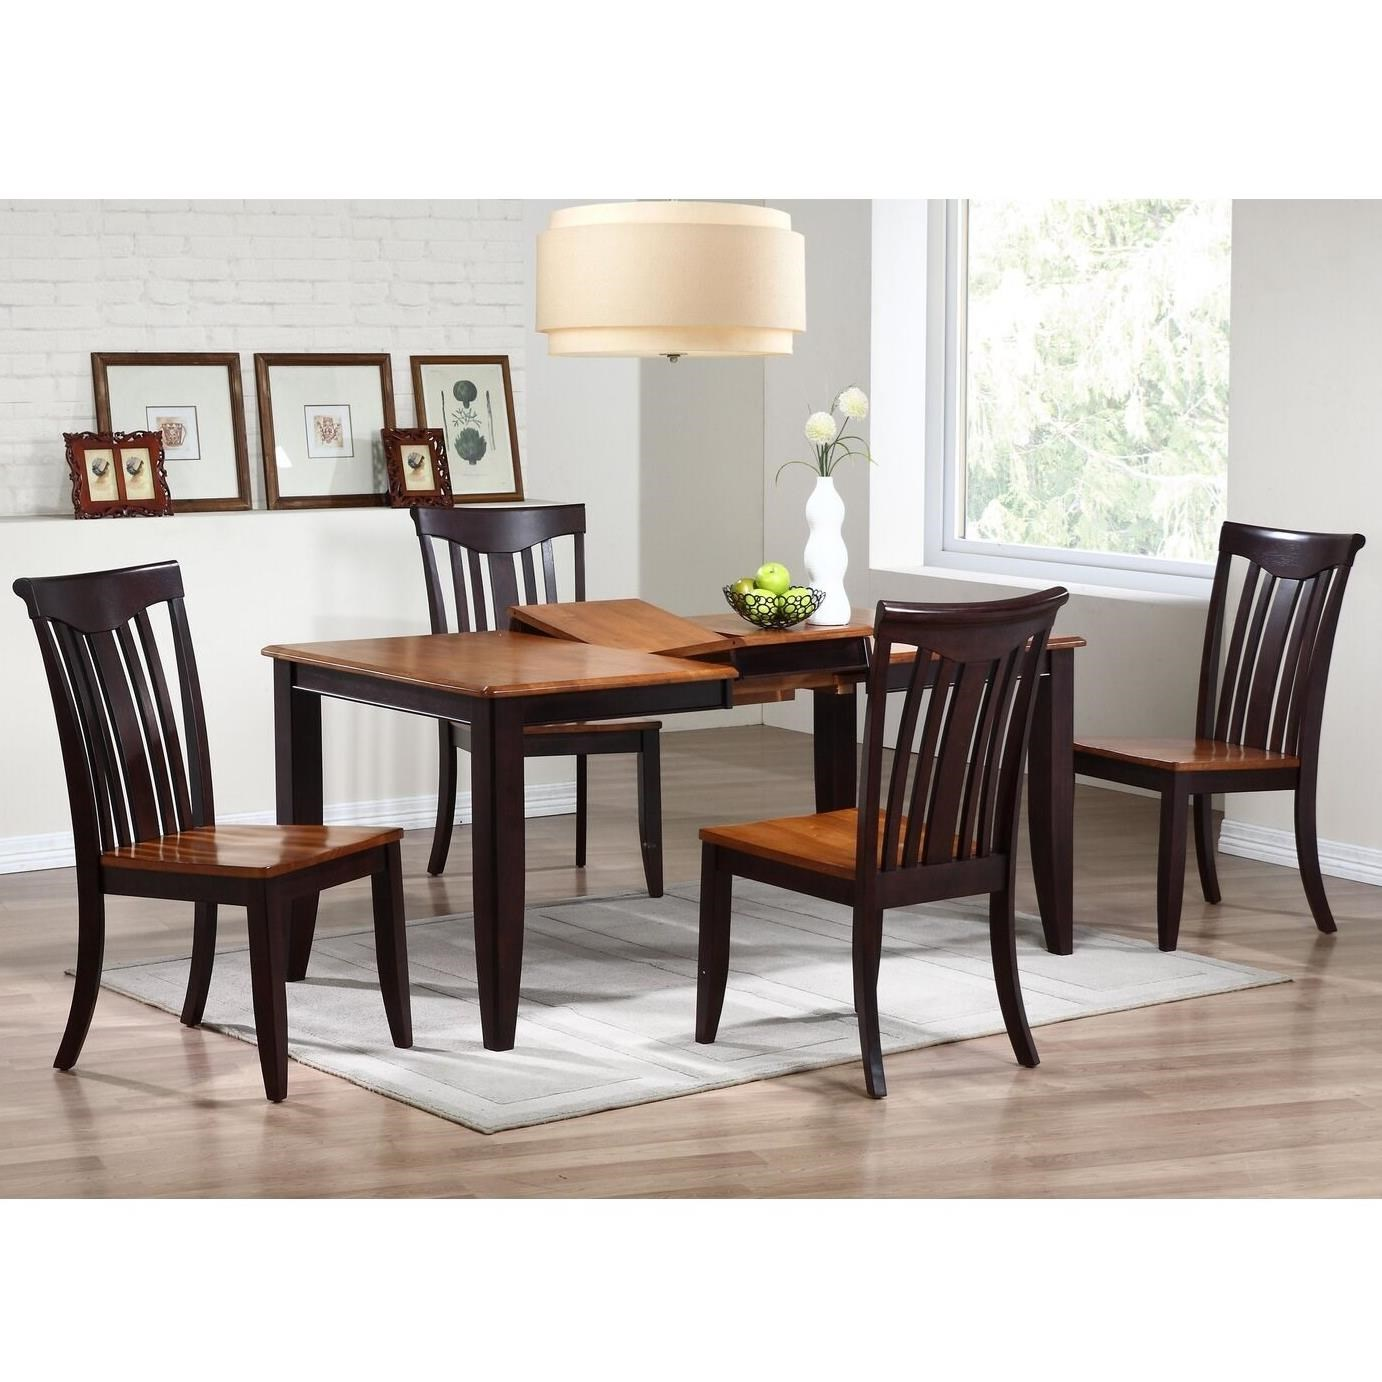 Whiskey Mocha 5 Piece Rectangular Dining Set by Iconic Furniture Co. at Dinette Depot